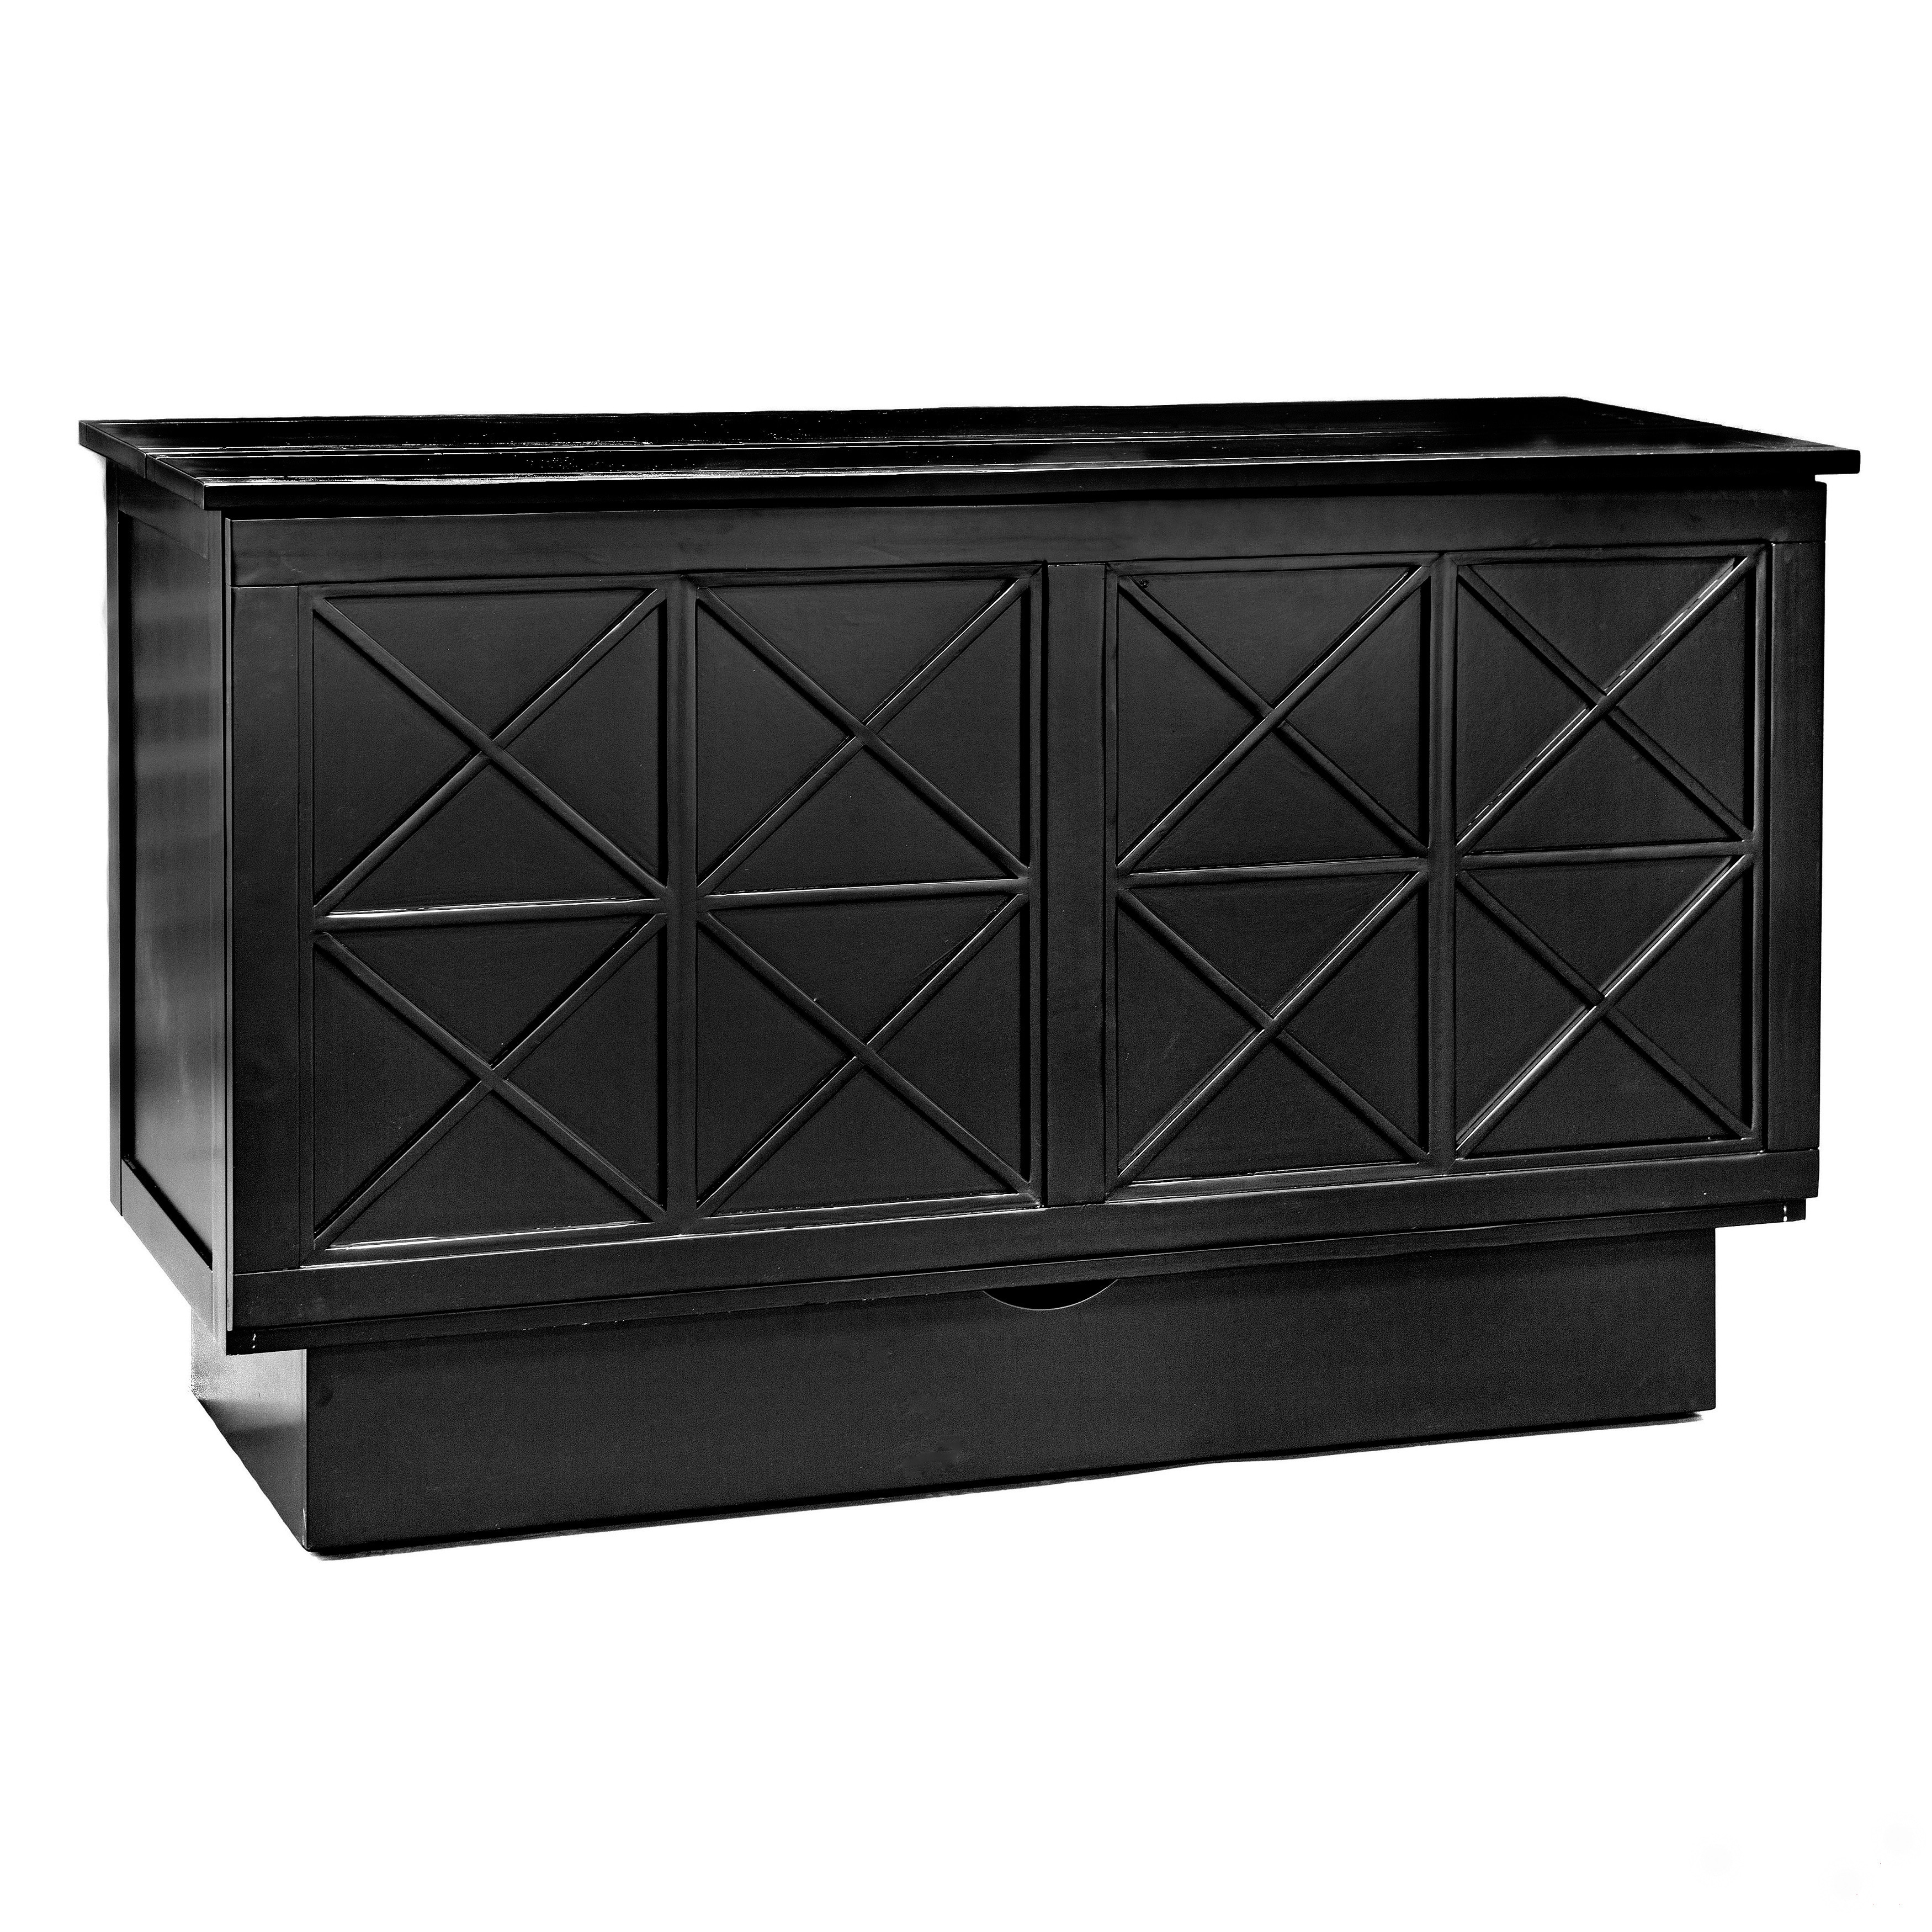 Essie Black Finish Wood/Linen/Fabric Cabinet Bed with Mat...